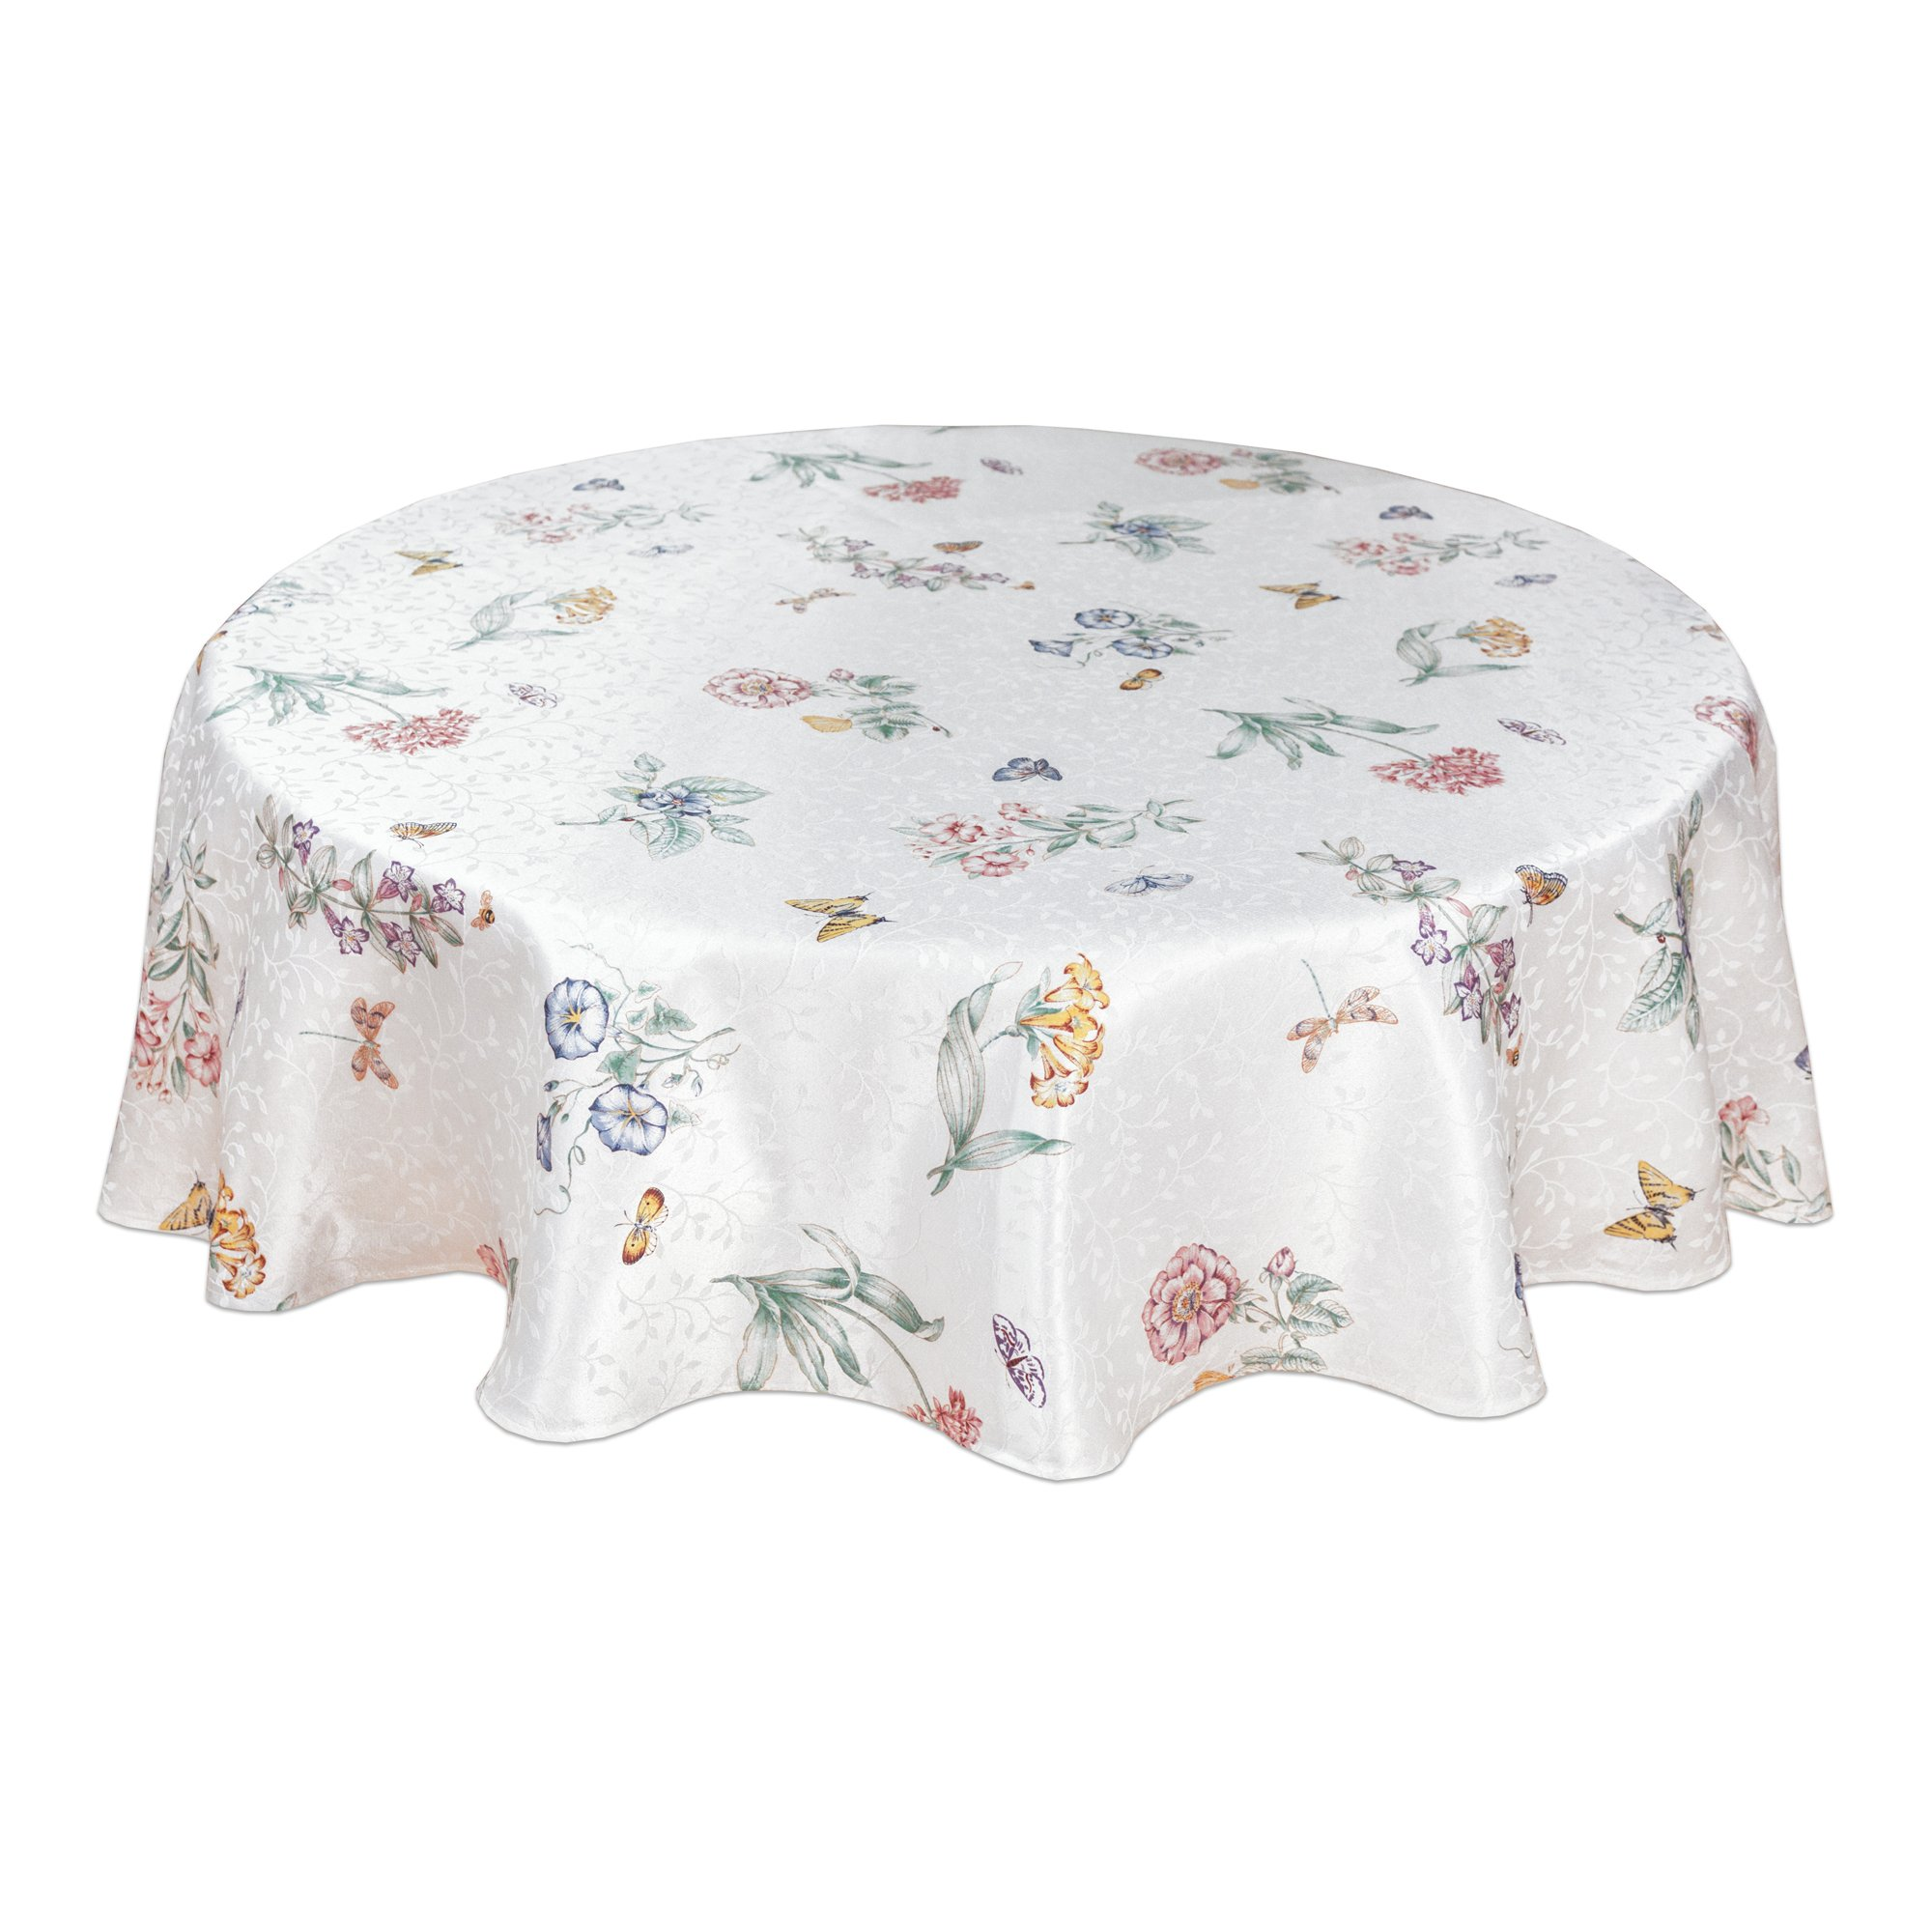 Lenox Butterfly Meadow 70-inch Round Tablecloth by Lenox